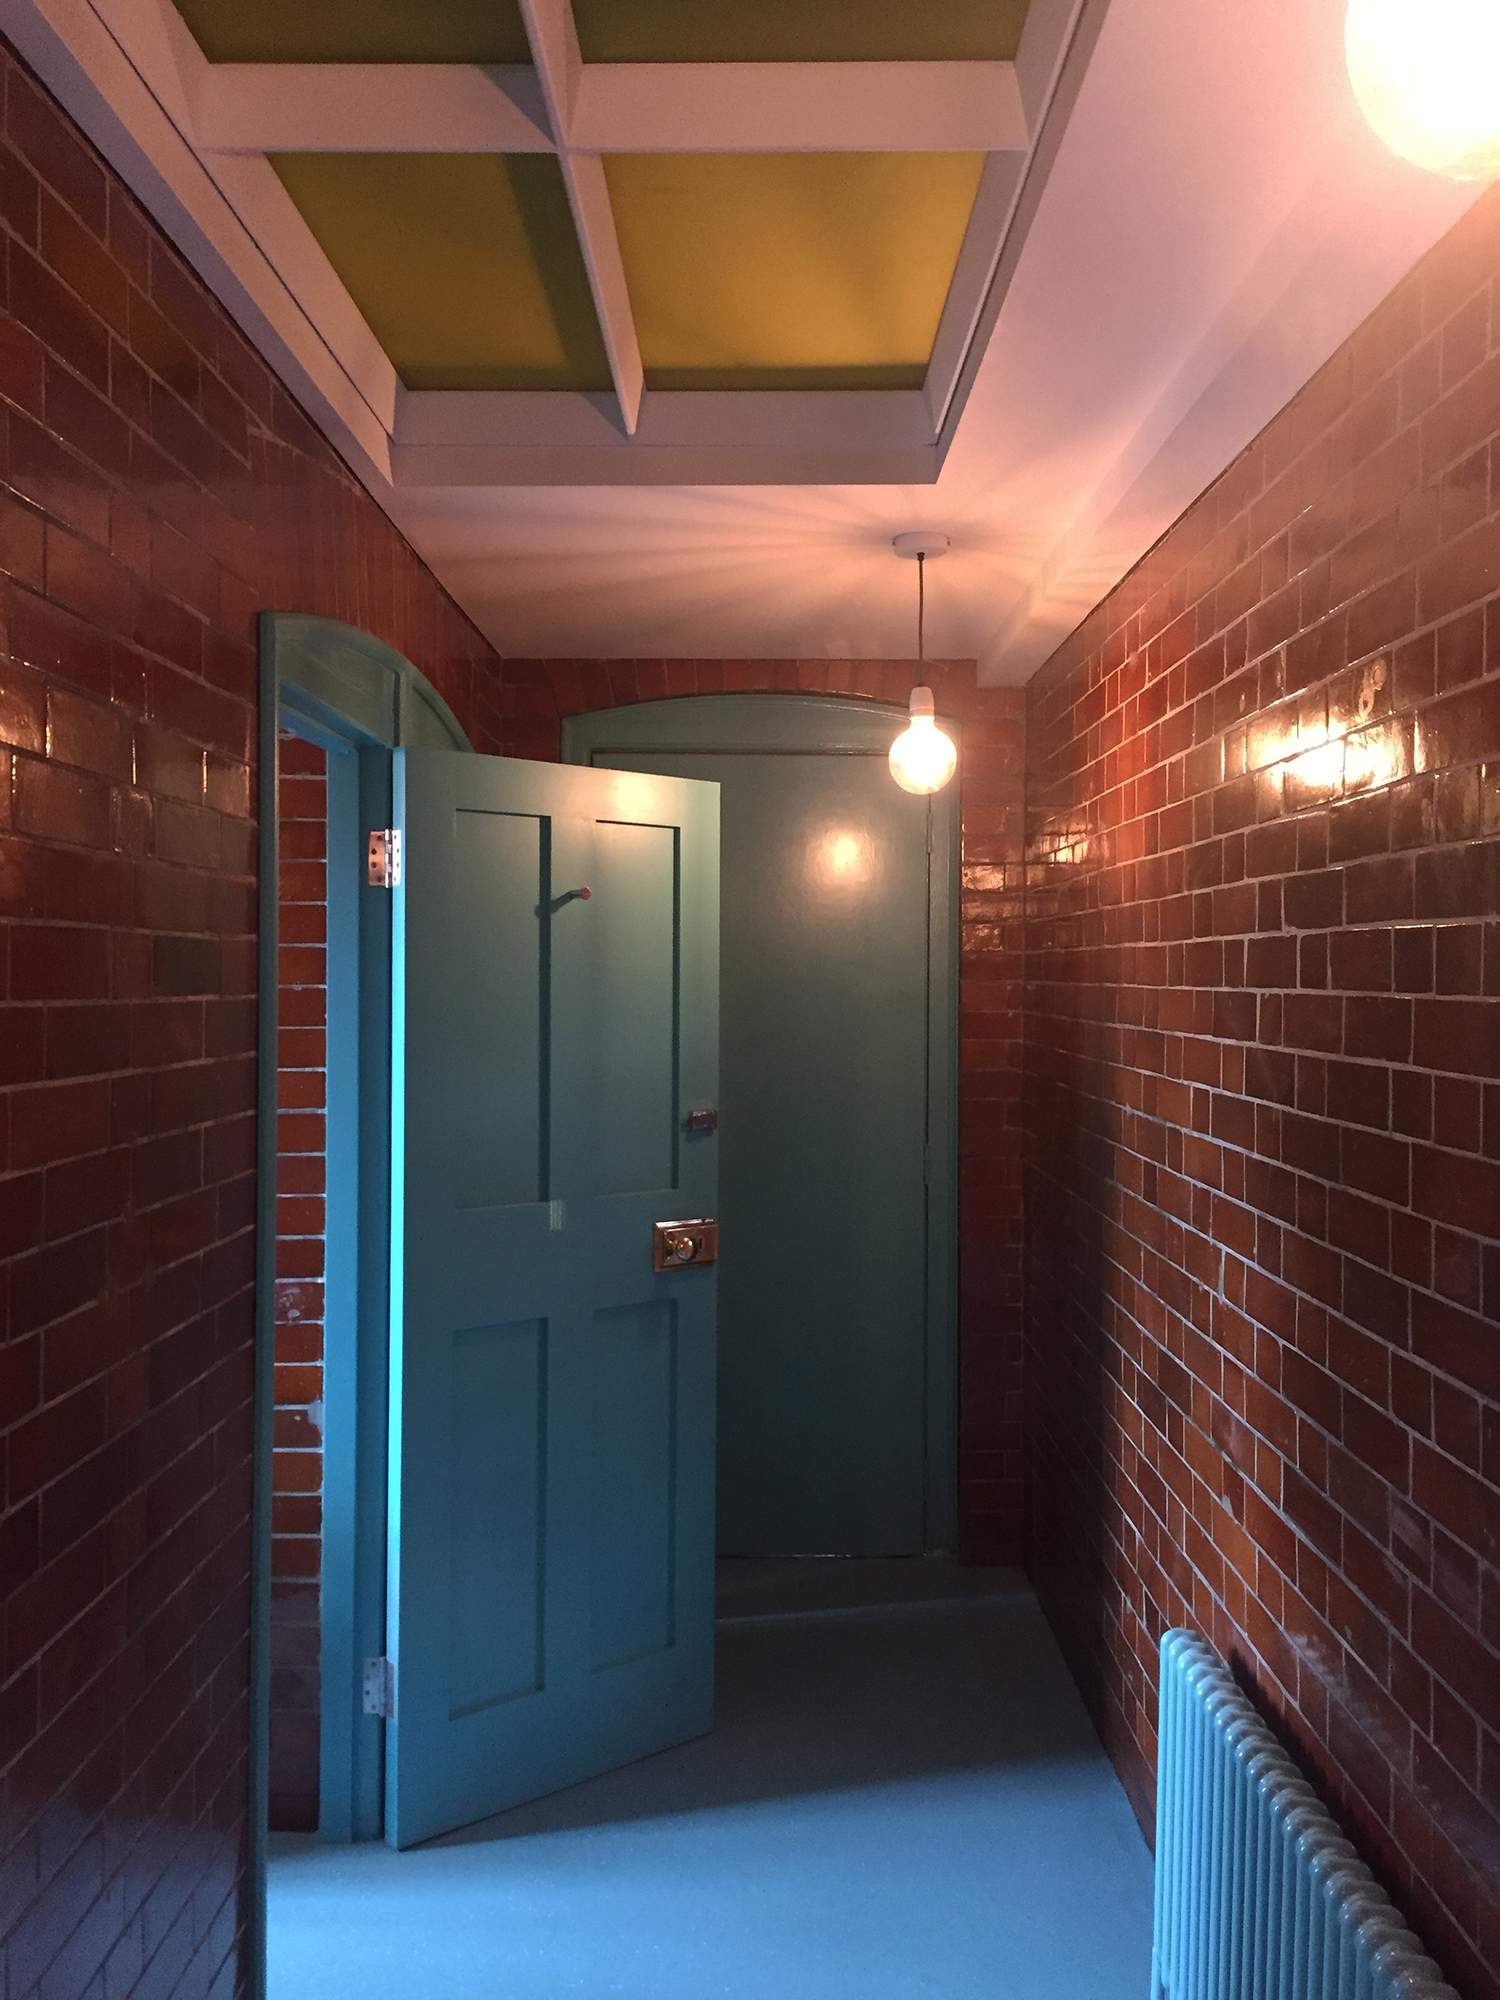 Refurbished lavatories: the original tiles have been restored and a turquoise blue paint and floor chosen to create a contrast in colour and texture that reveals their quality.